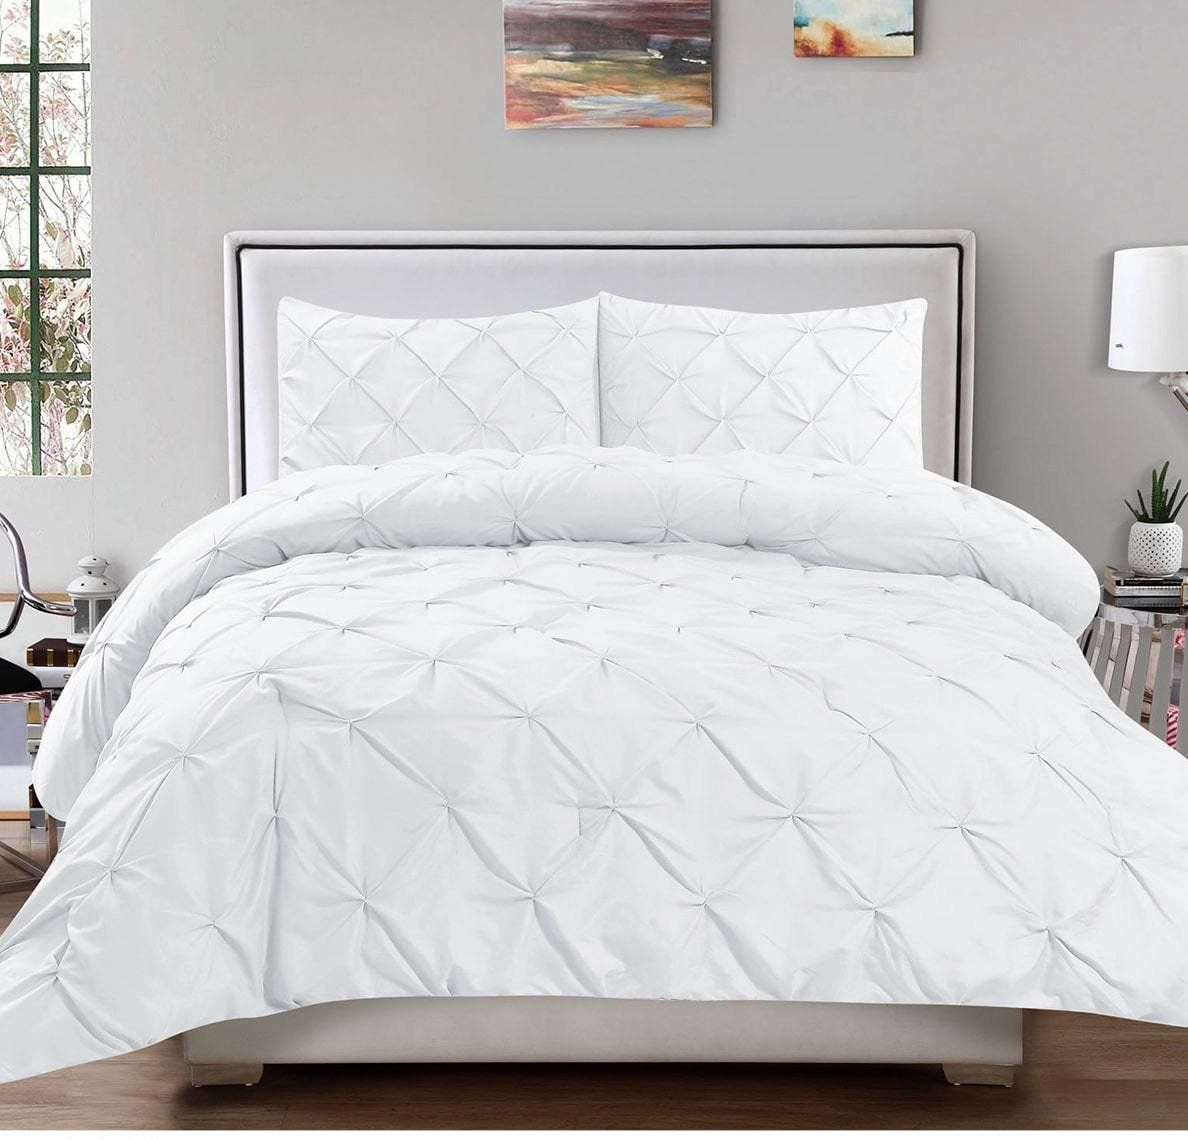 wrinkle pinch white sets piece cover product pleat pure duvet sers pinched princess cotton pattern